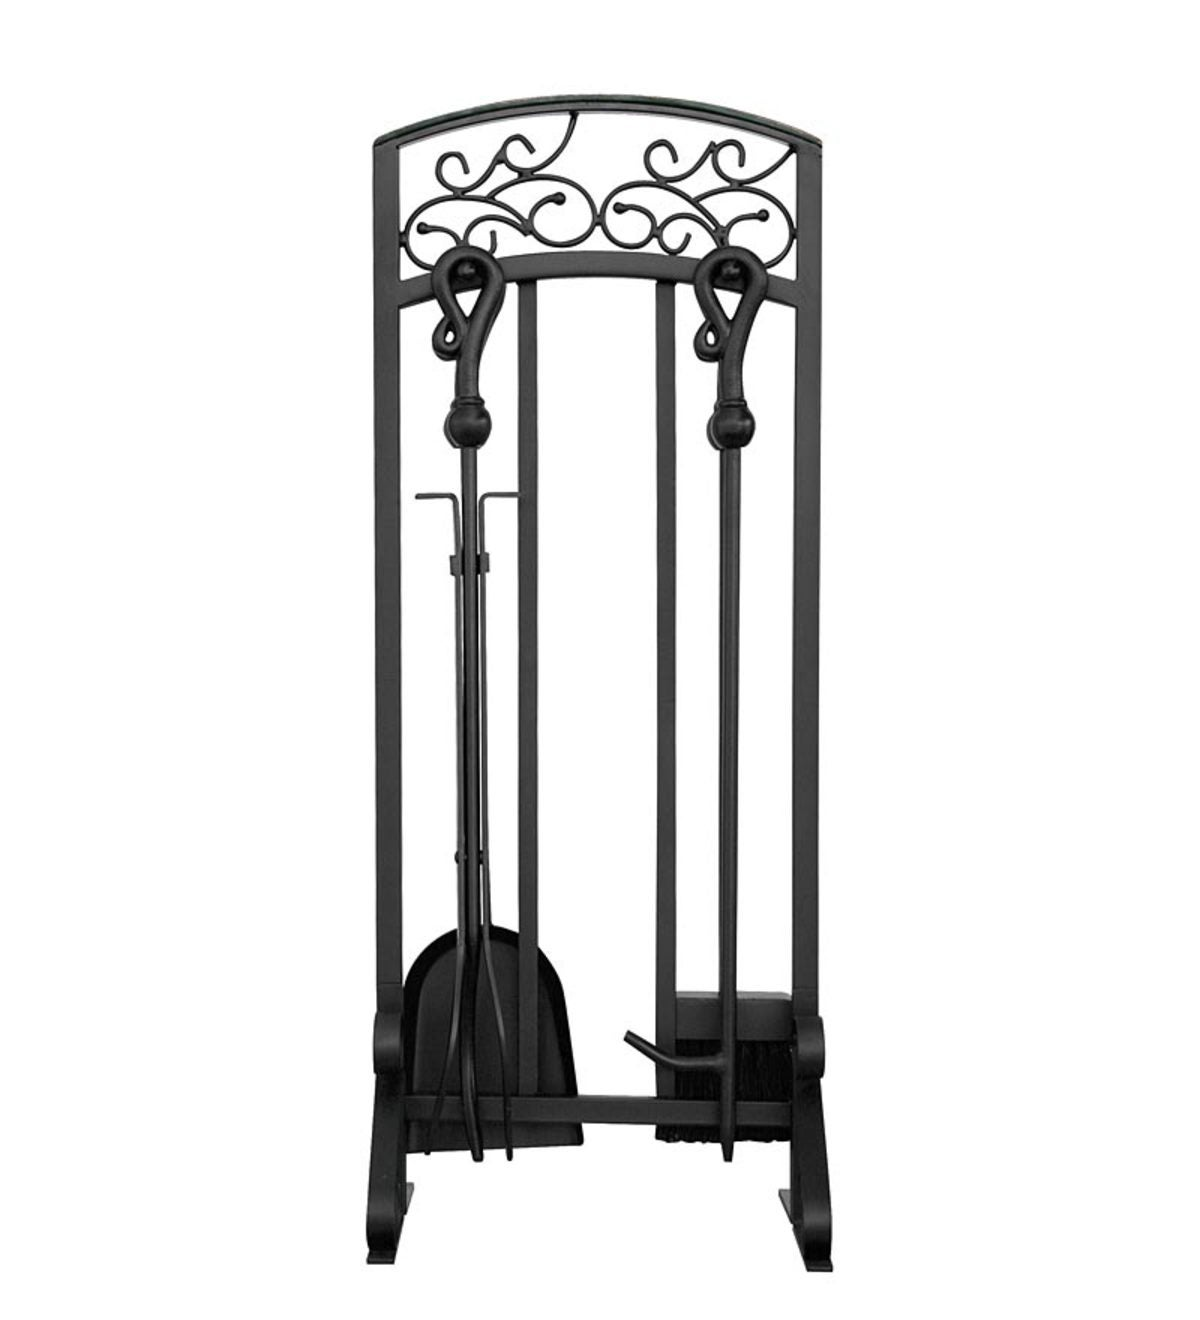 Black Wrought Iron 5-Piece Fireplace Tool Set with Hammered Copper Top Trim - Black